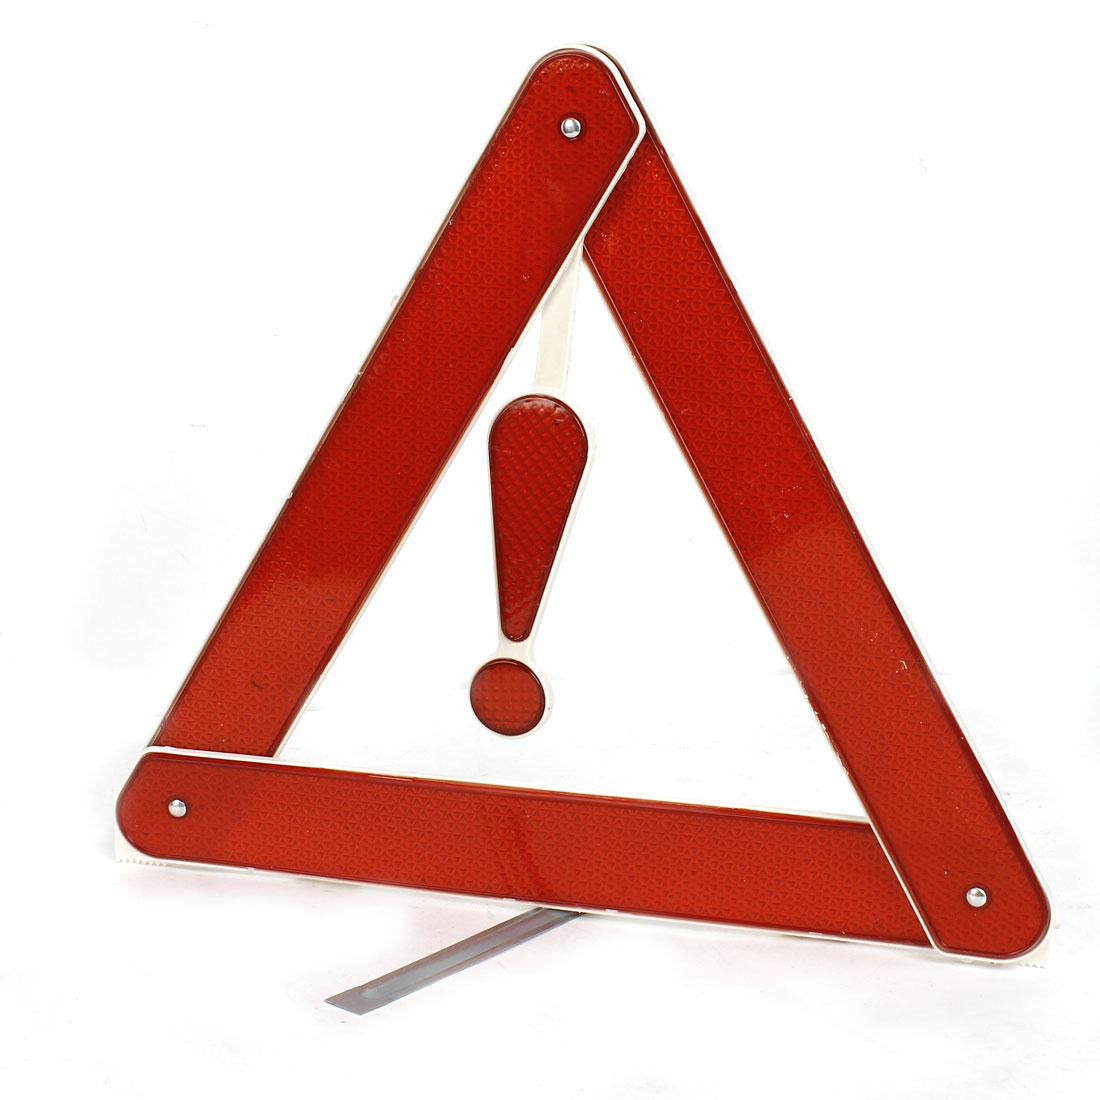 Unique Bargains Silver Tone Red Metal Bracket Plastic Safety Warning Reflecting Triangle for Car